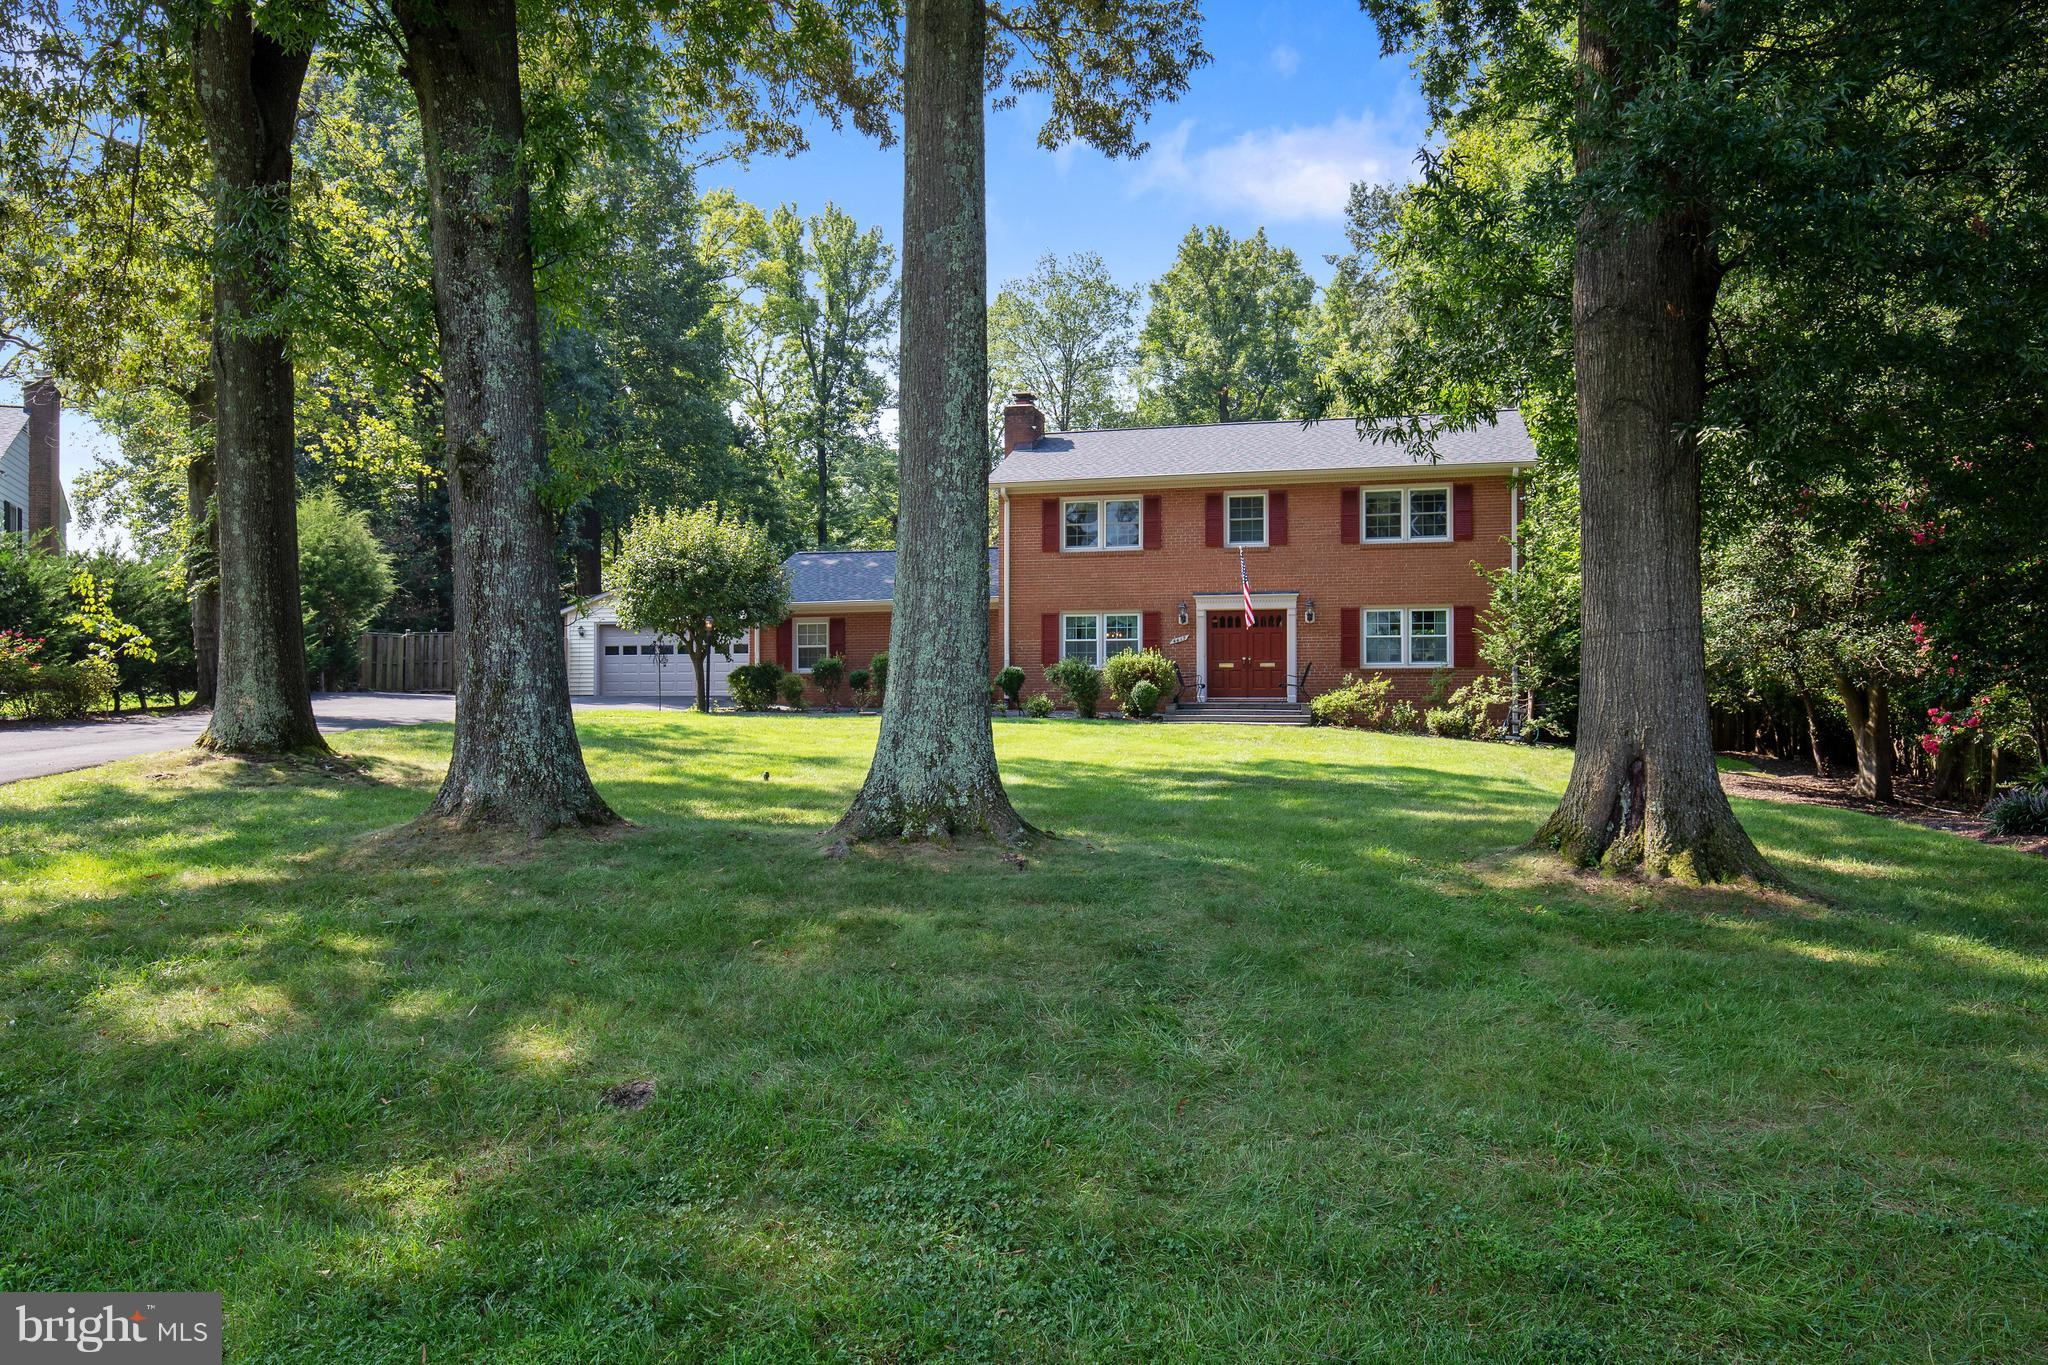 Major price reduction! Exceptionally unique and spacious  Colonial on private .72 acre lot. Special features include: updated kitchen, updated baths, family room with gas fireplace opens to patio overlooking serene pool scene, detached two car garage, extra parking area for RV/ Boat. Short walk to Mount Vernon Yacht Club and riverfront area! So much house and property for the money!